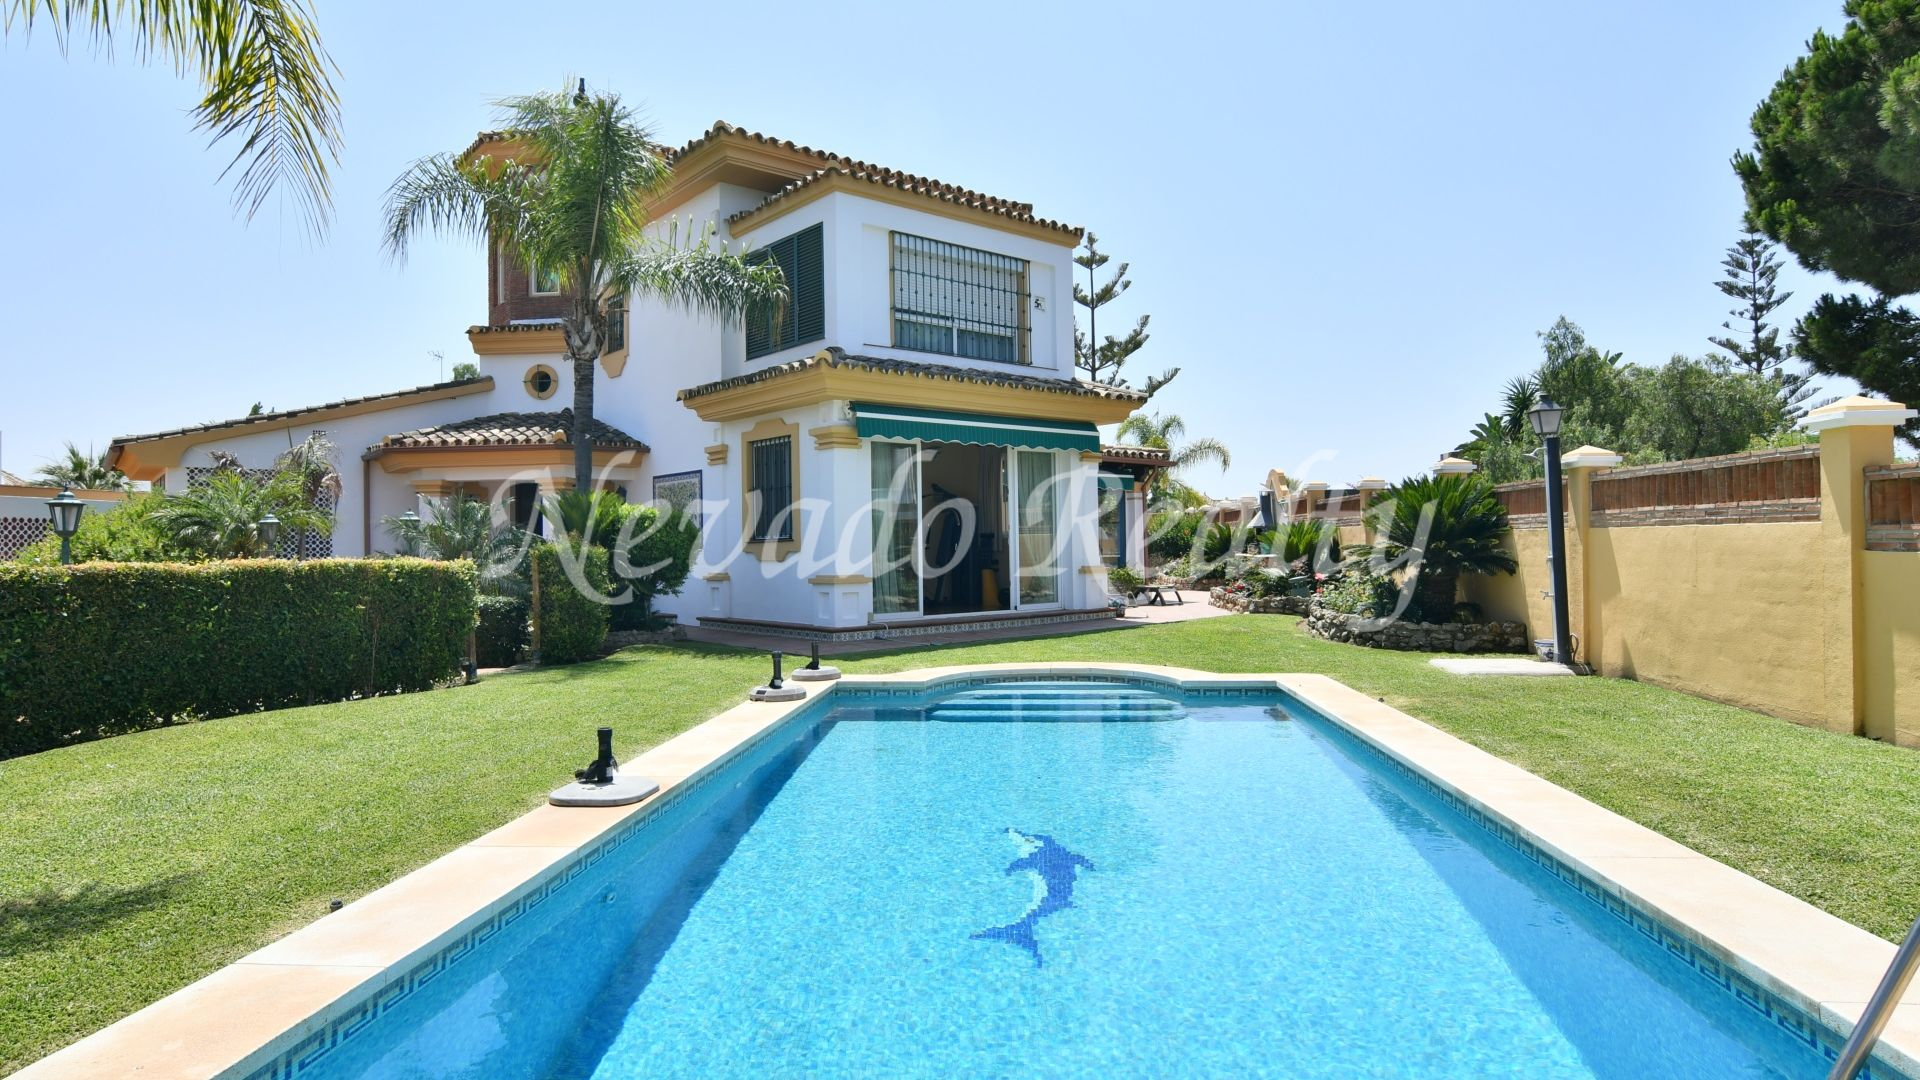 Family beachise house with private pool for sale in Las Chapas